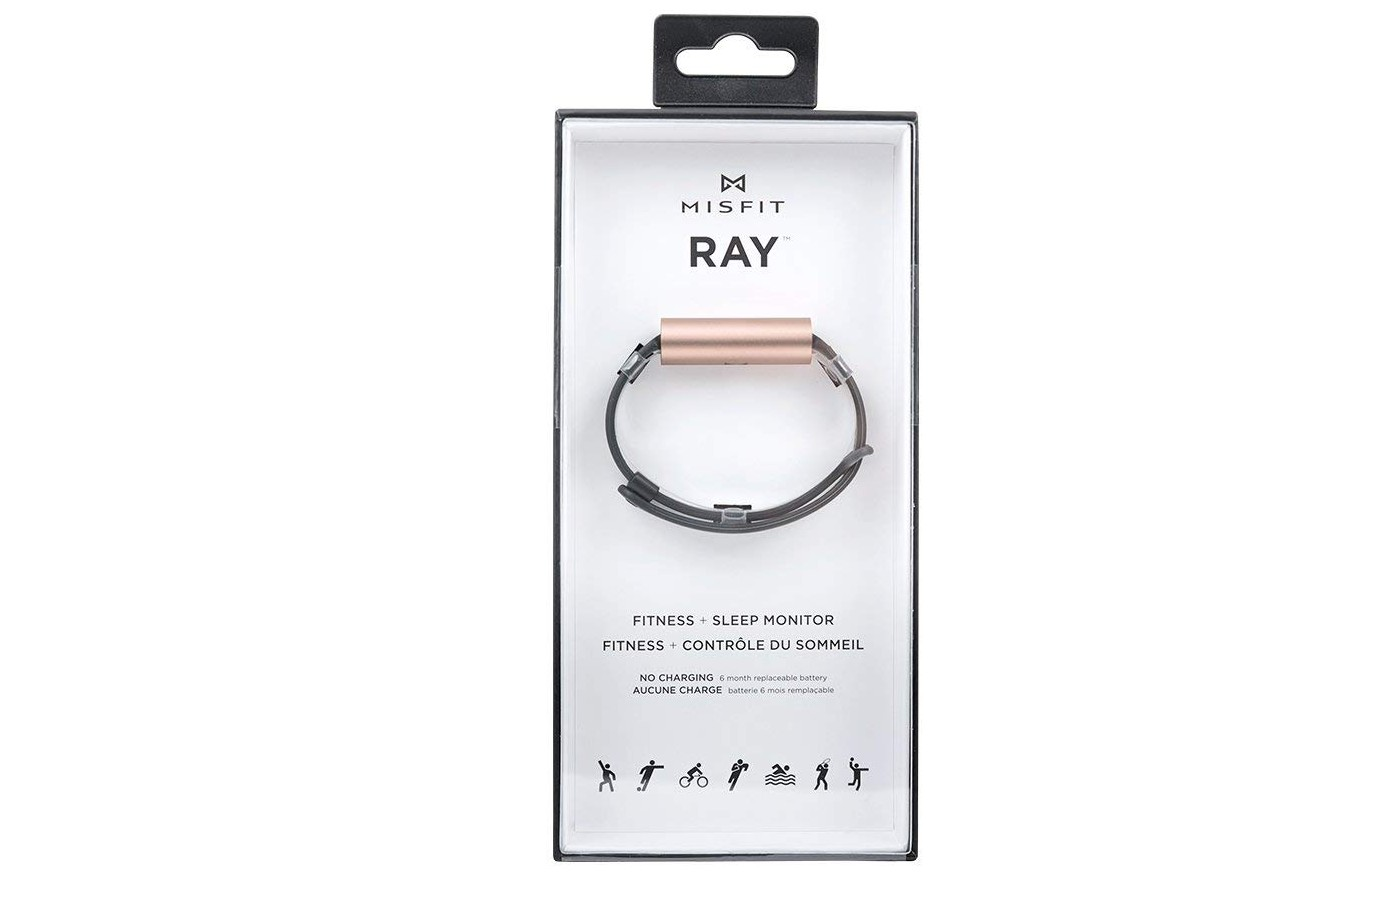 The basic features expected from a fitness tracker are provided by the Misfit Ray.